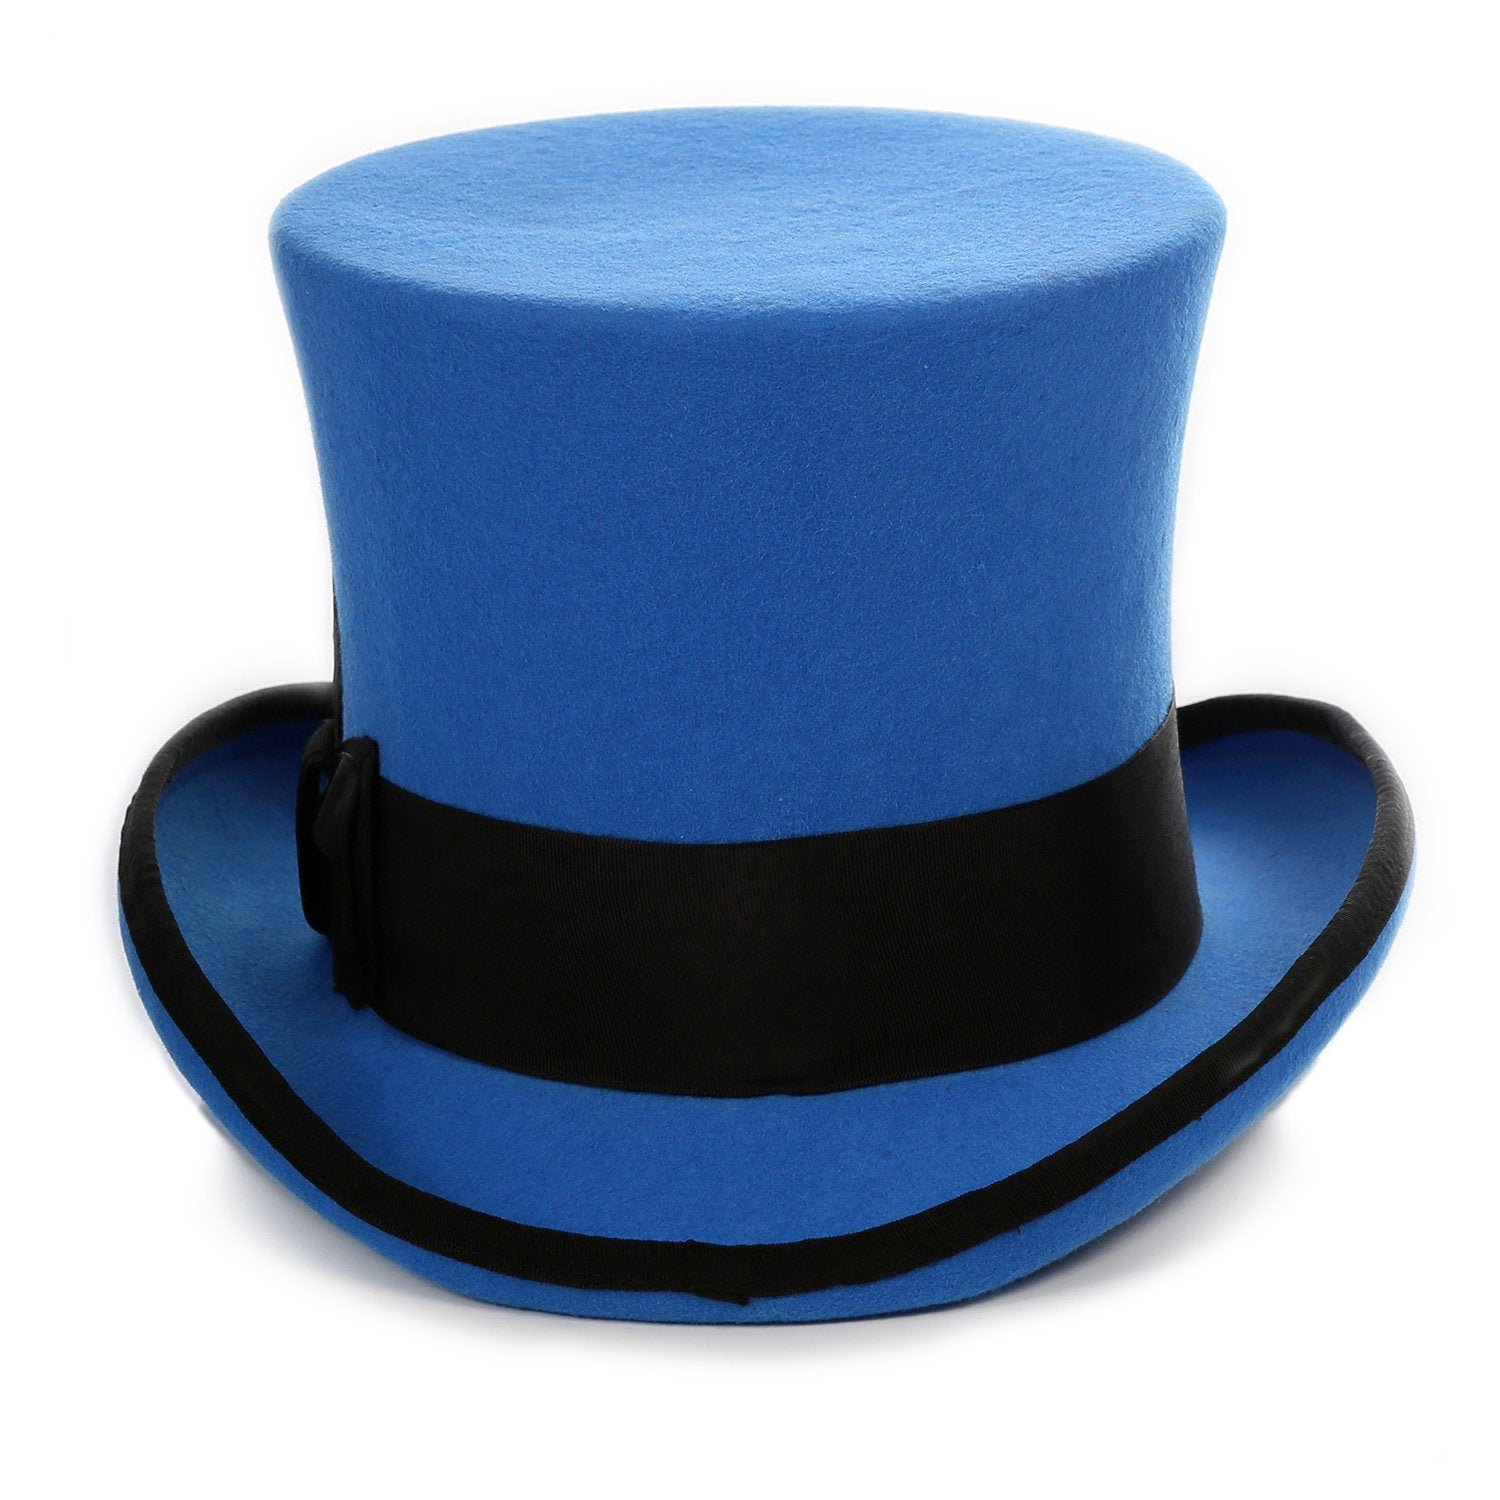 Ferrecci Royal Blue and Black Wool Felt Top Hat - Giorgio's Menswear